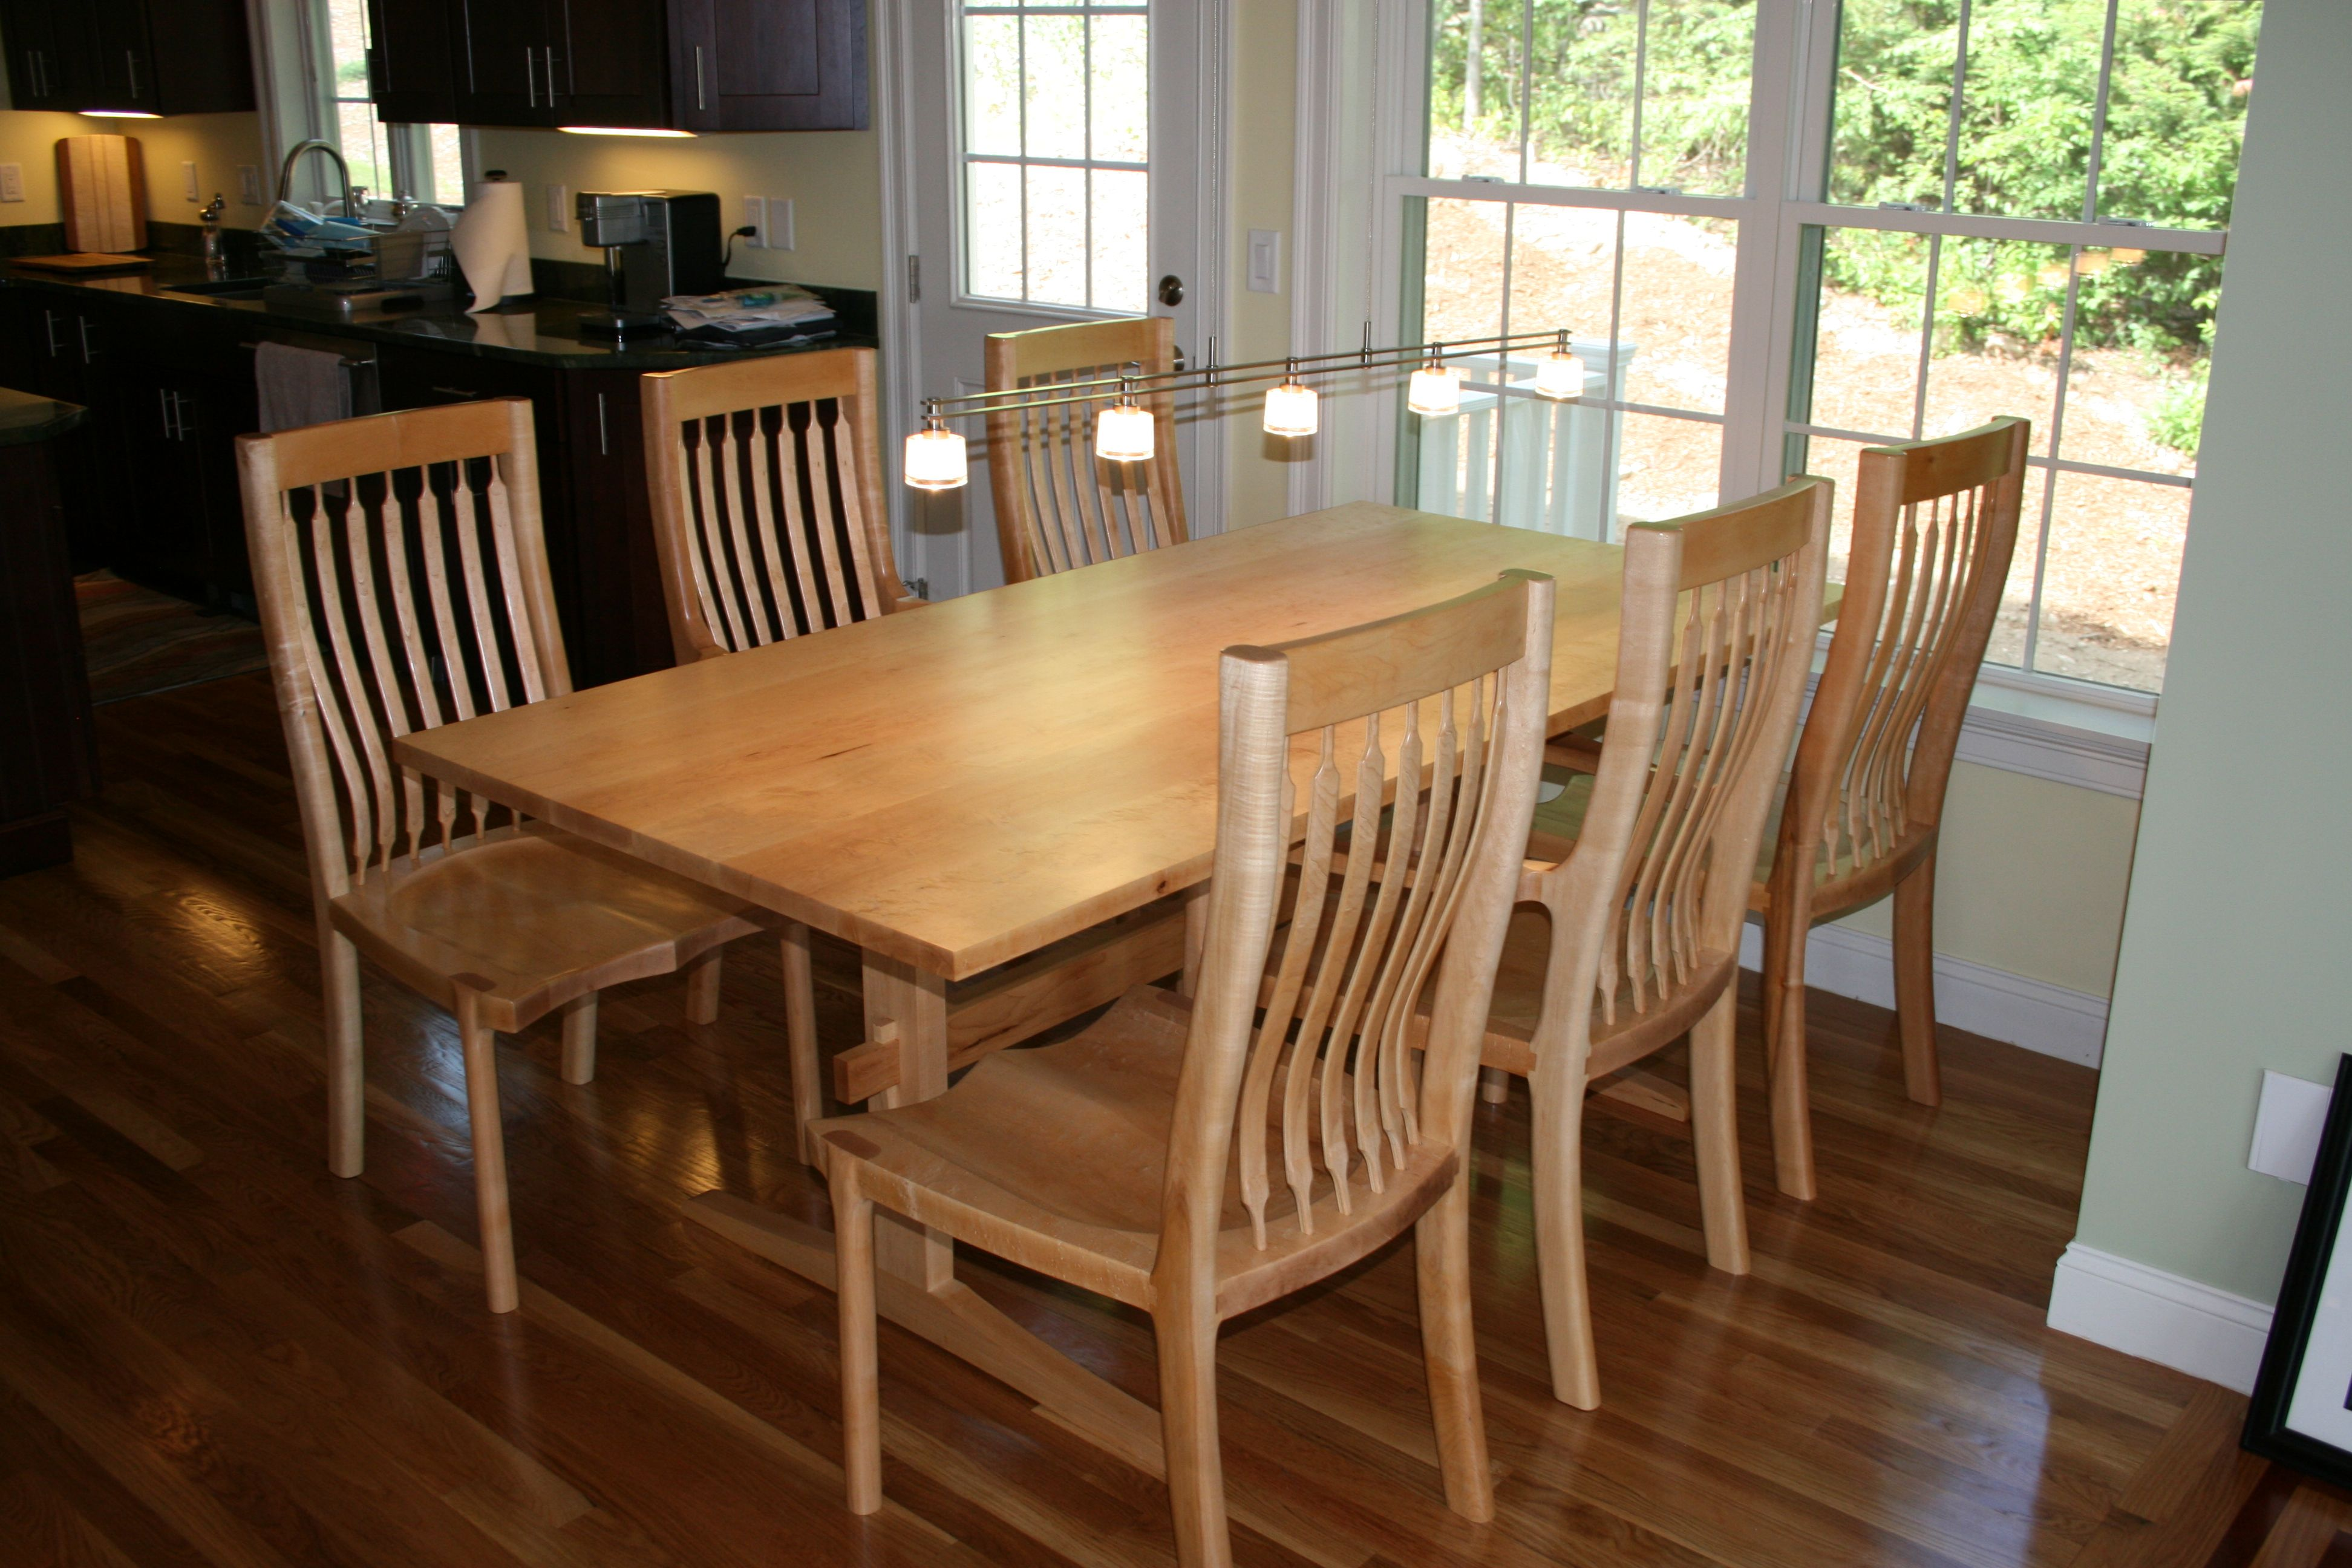 Sculpted Dining Room Table And Chairs From Vermont Furniture Maker Kit Clark Maple Handmade